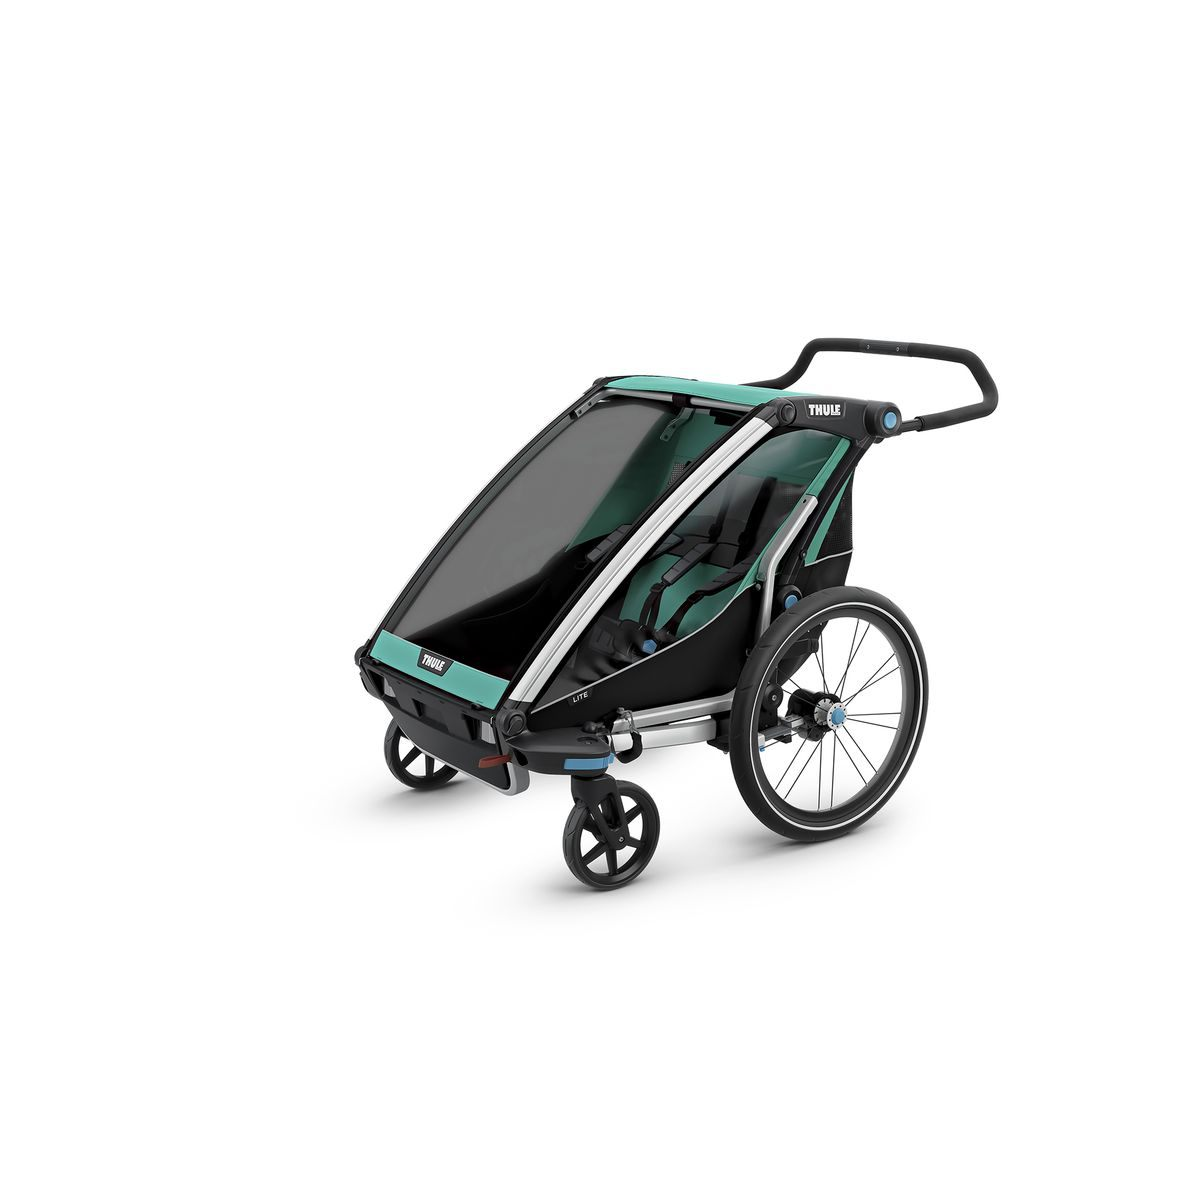 Thule Chariot Lite 2 Inspirant Kup Thule Chariot Chariot Lite Multisport Trailer